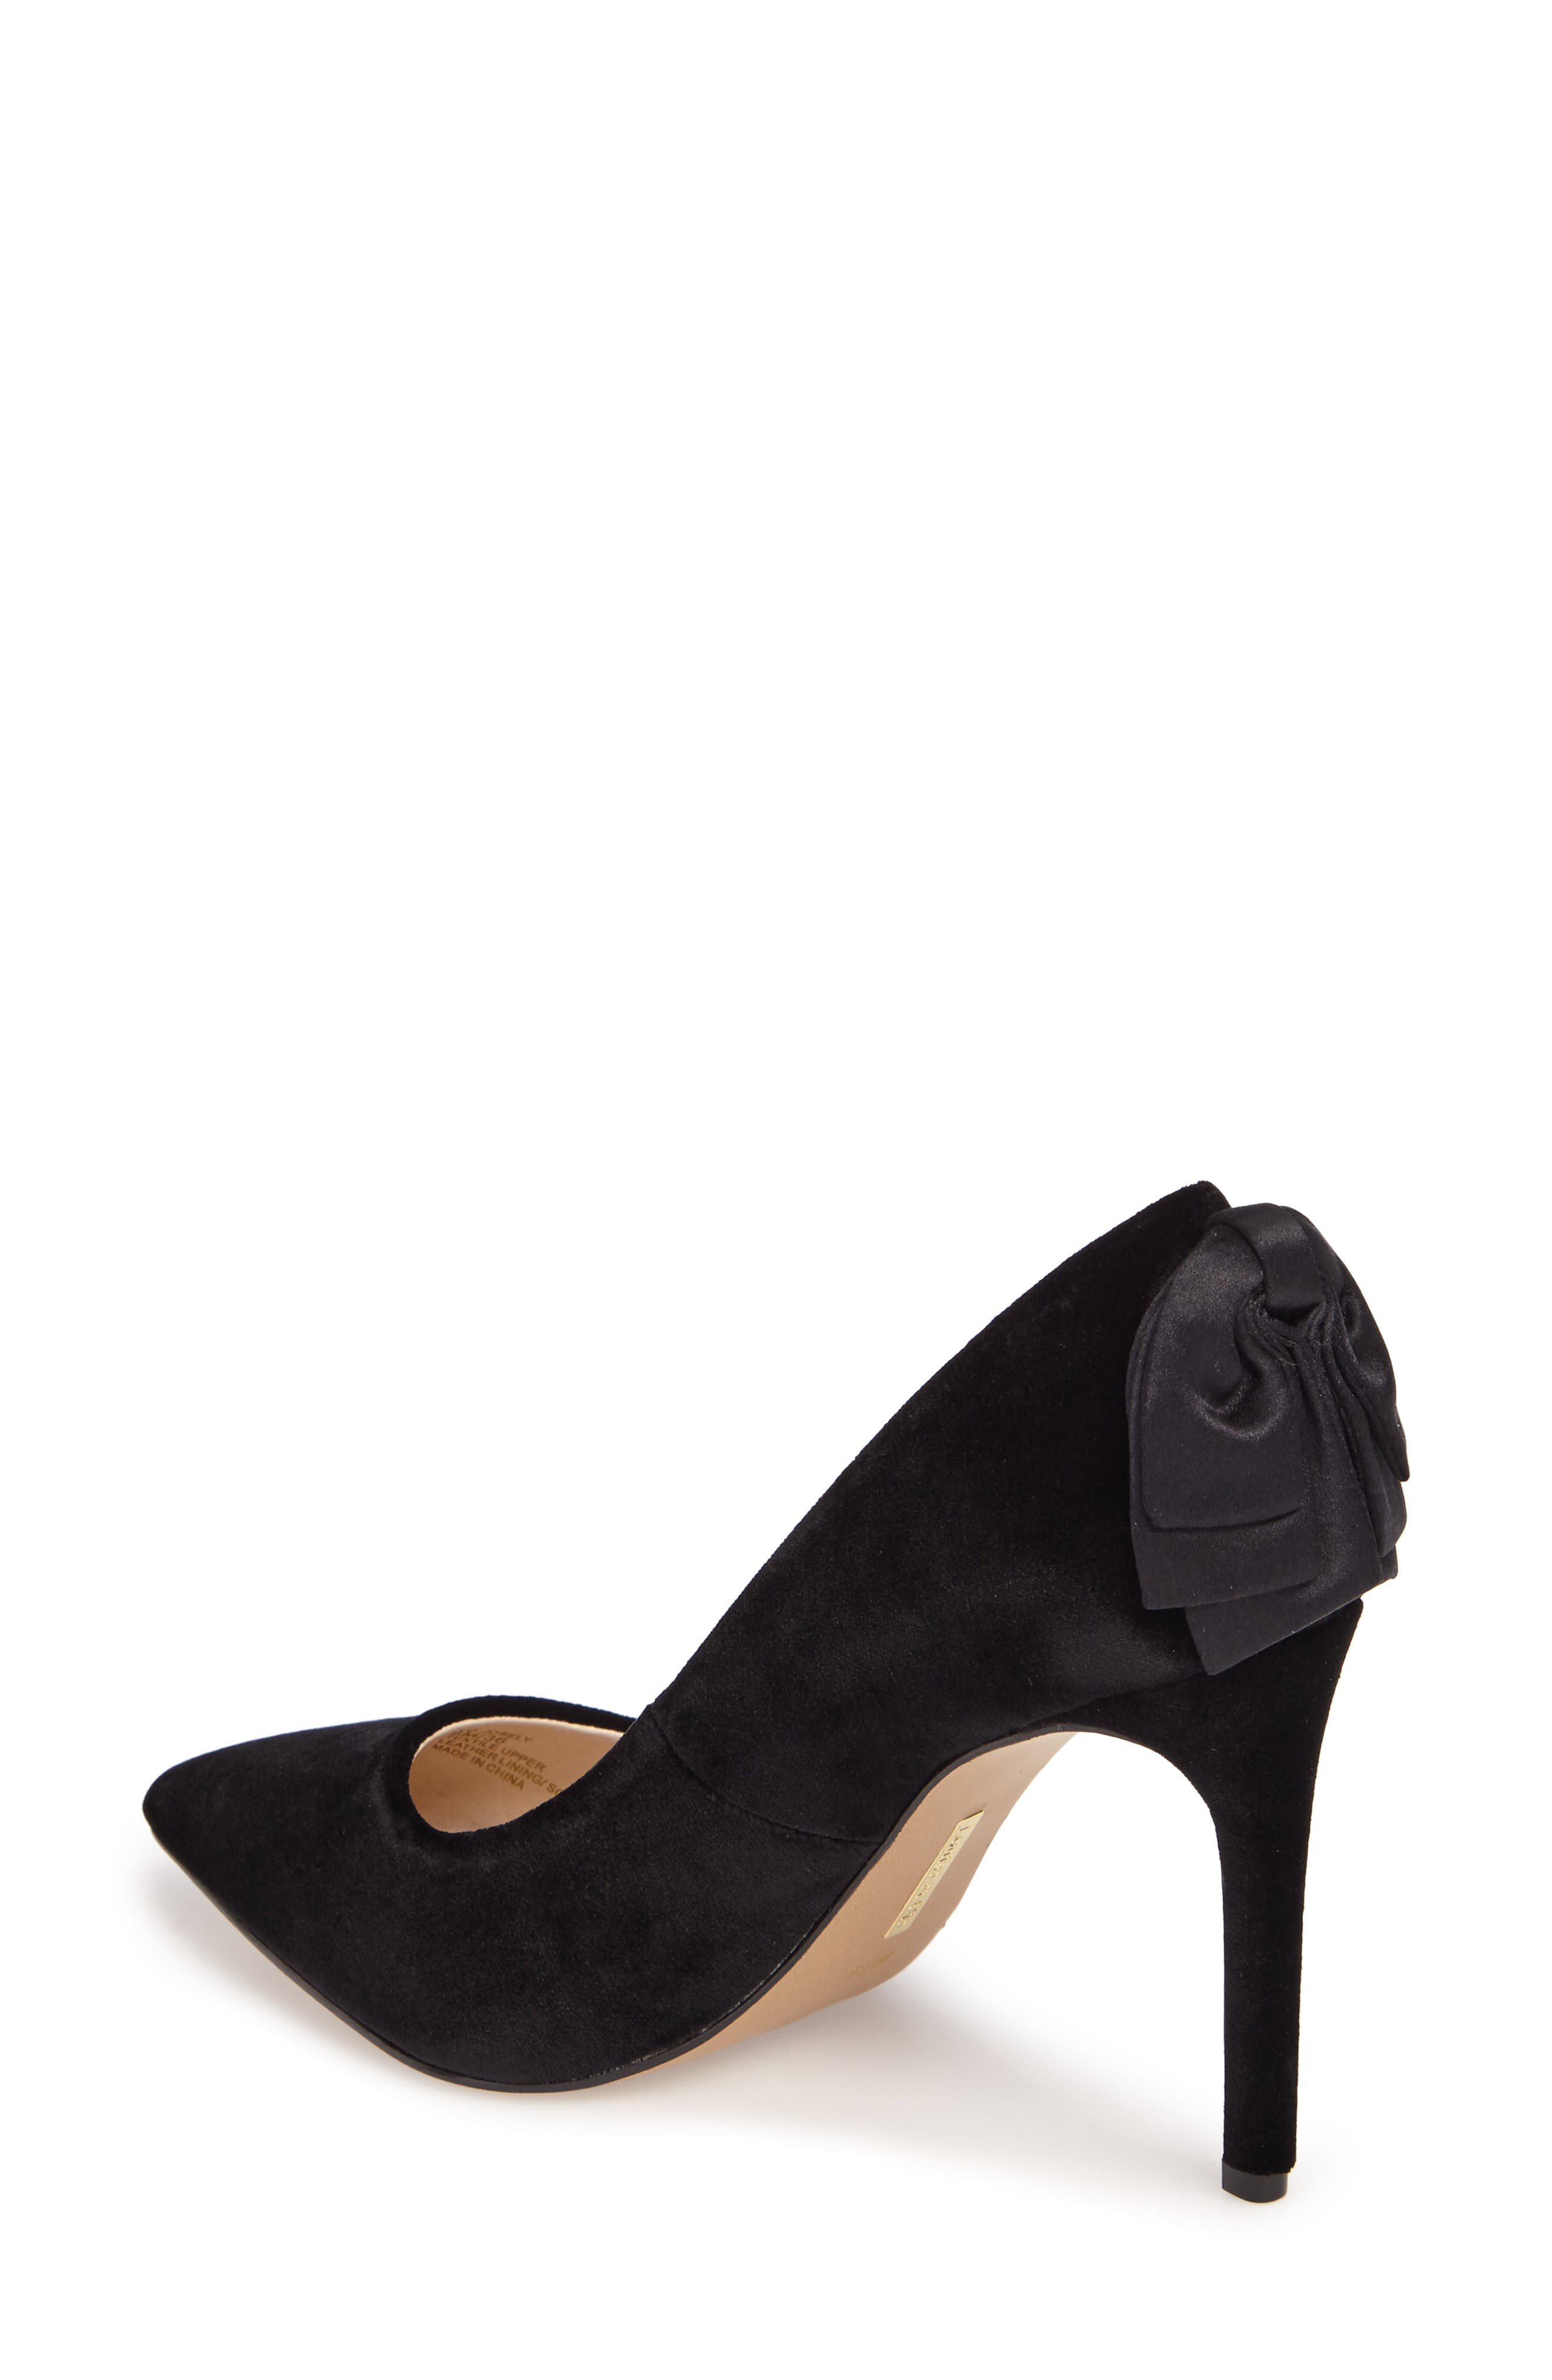 Josely Pointy Toe Pump,                             Alternate thumbnail 4, color,